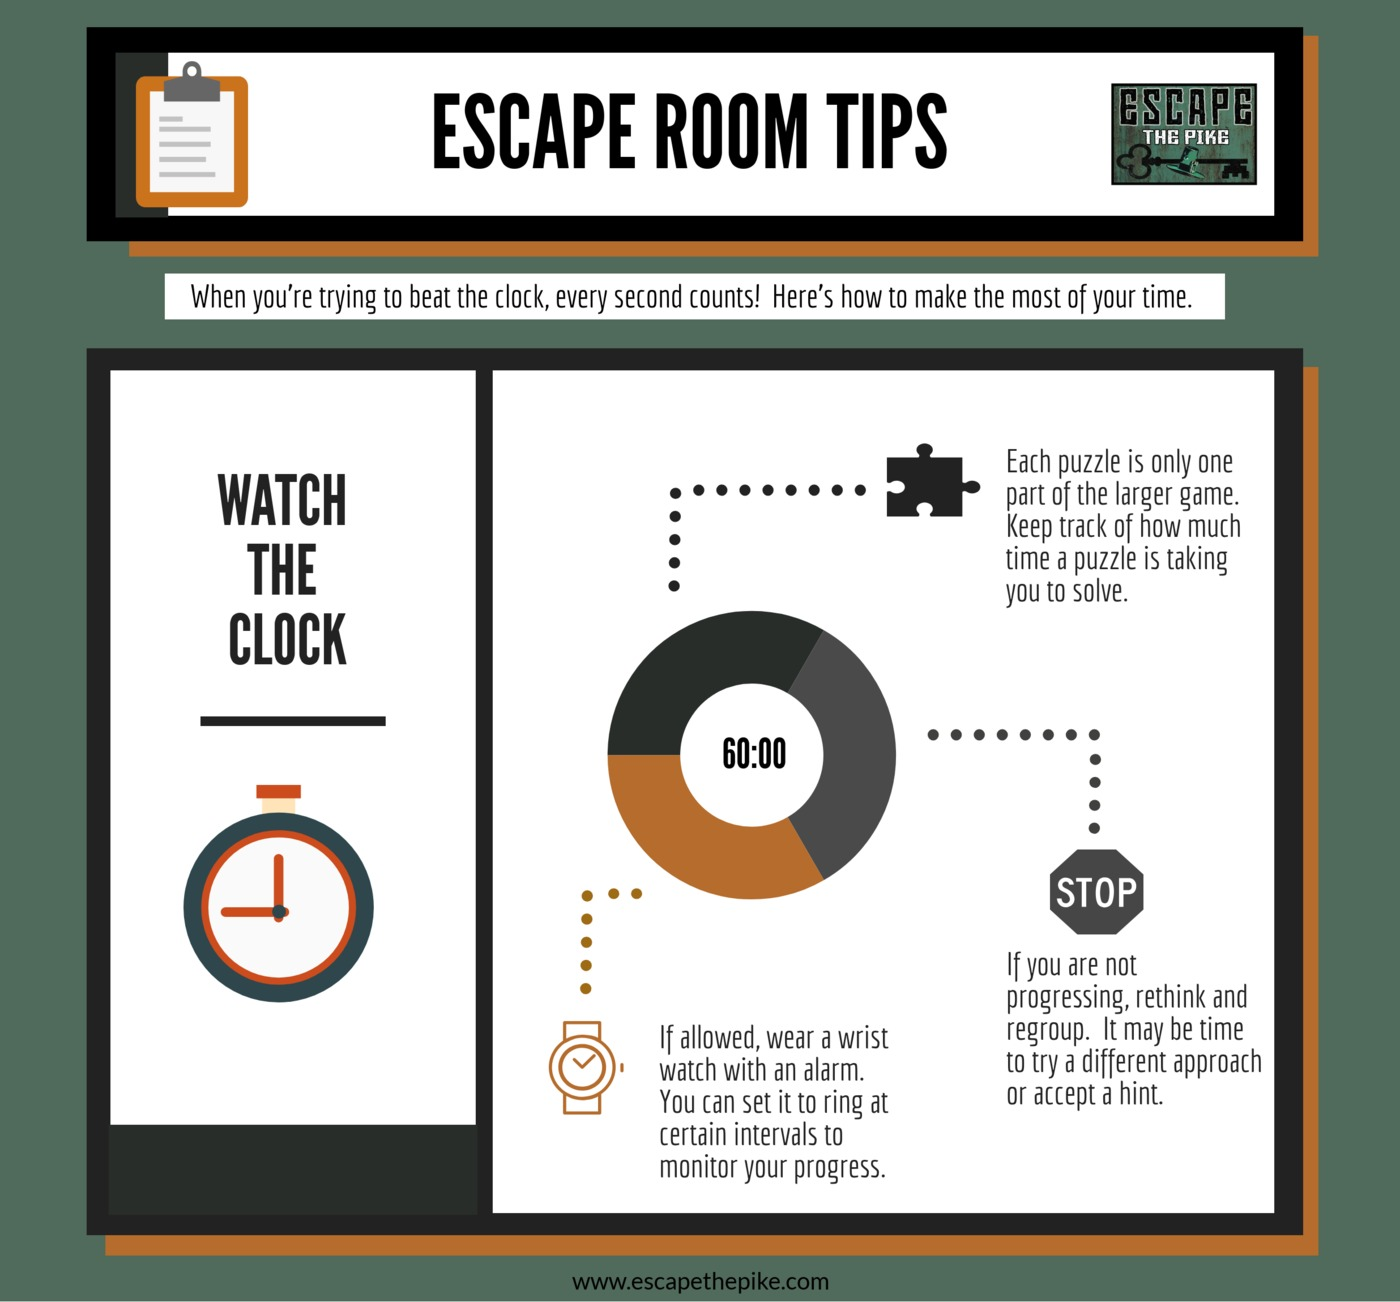 Tip #2- In an escape room, you are in a race against the clock. How long is too long to spend on one puzzle? Your Game Master understands how long it will take you to progress through the room. Utilize them as a resource to help you master the game. Ask for feedback about how much time something is taking. Ask if they think you need a hint. Make sure that you do not become so focused on one thing that you lose sight of the time and bigger picture.